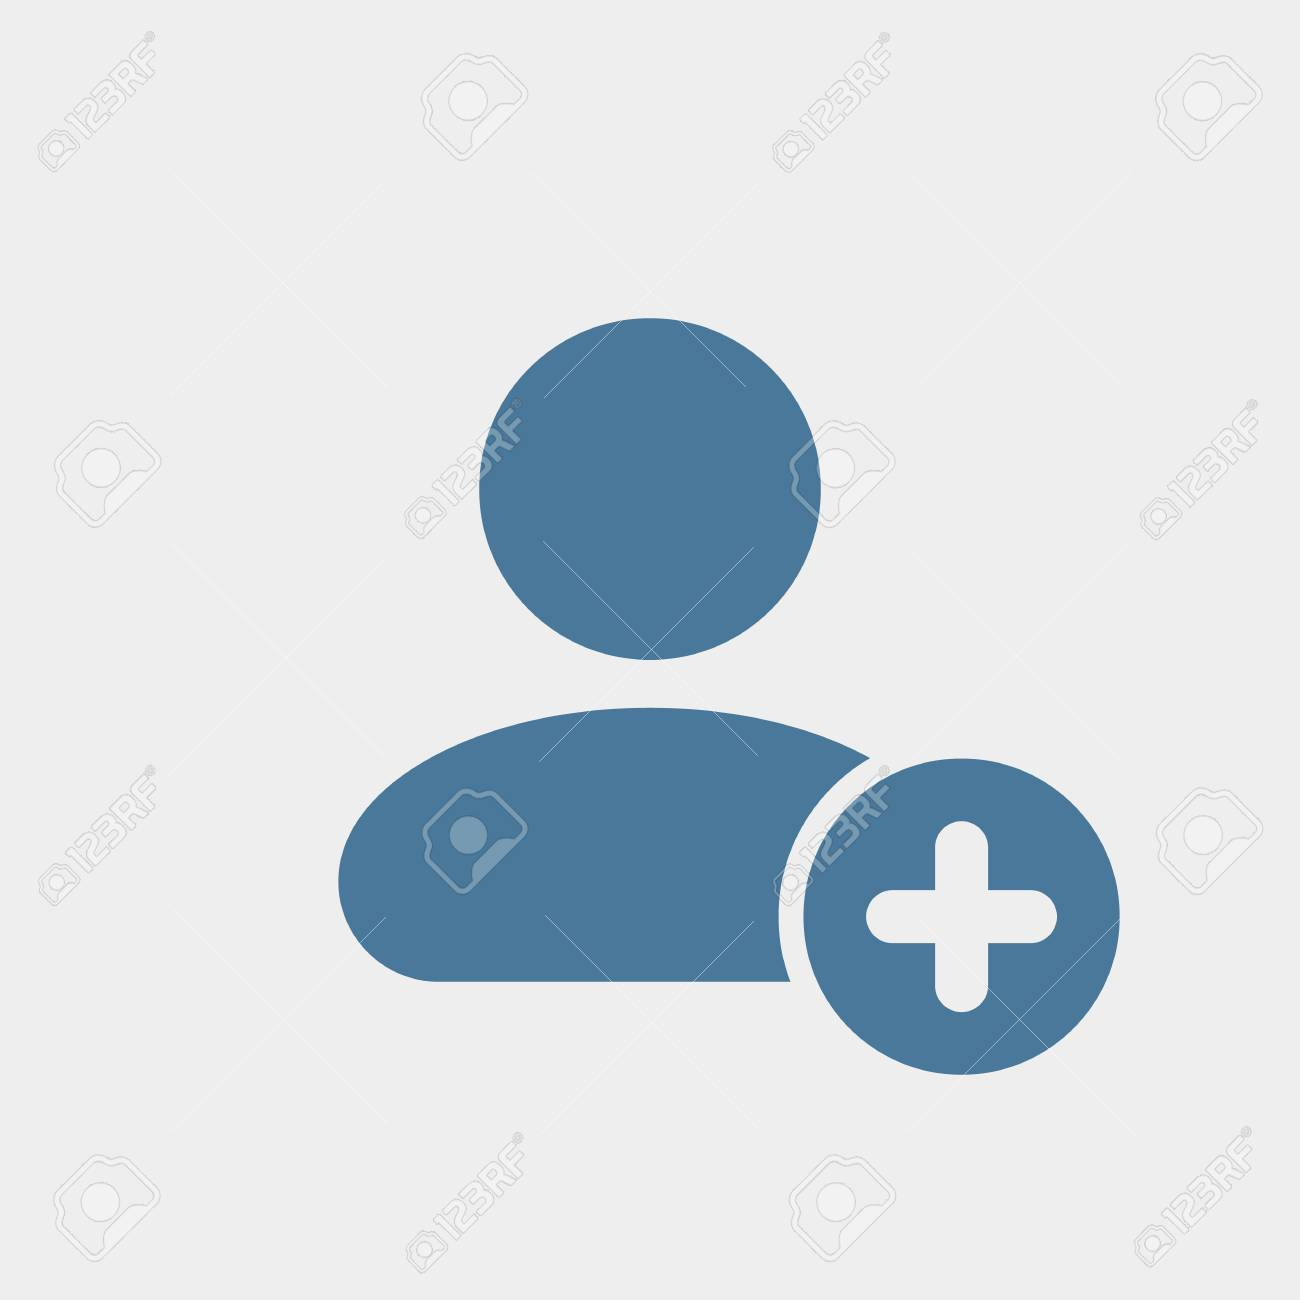 User icon with add sign. User icon and new, plus, positive concept. Vector icon - 97147833